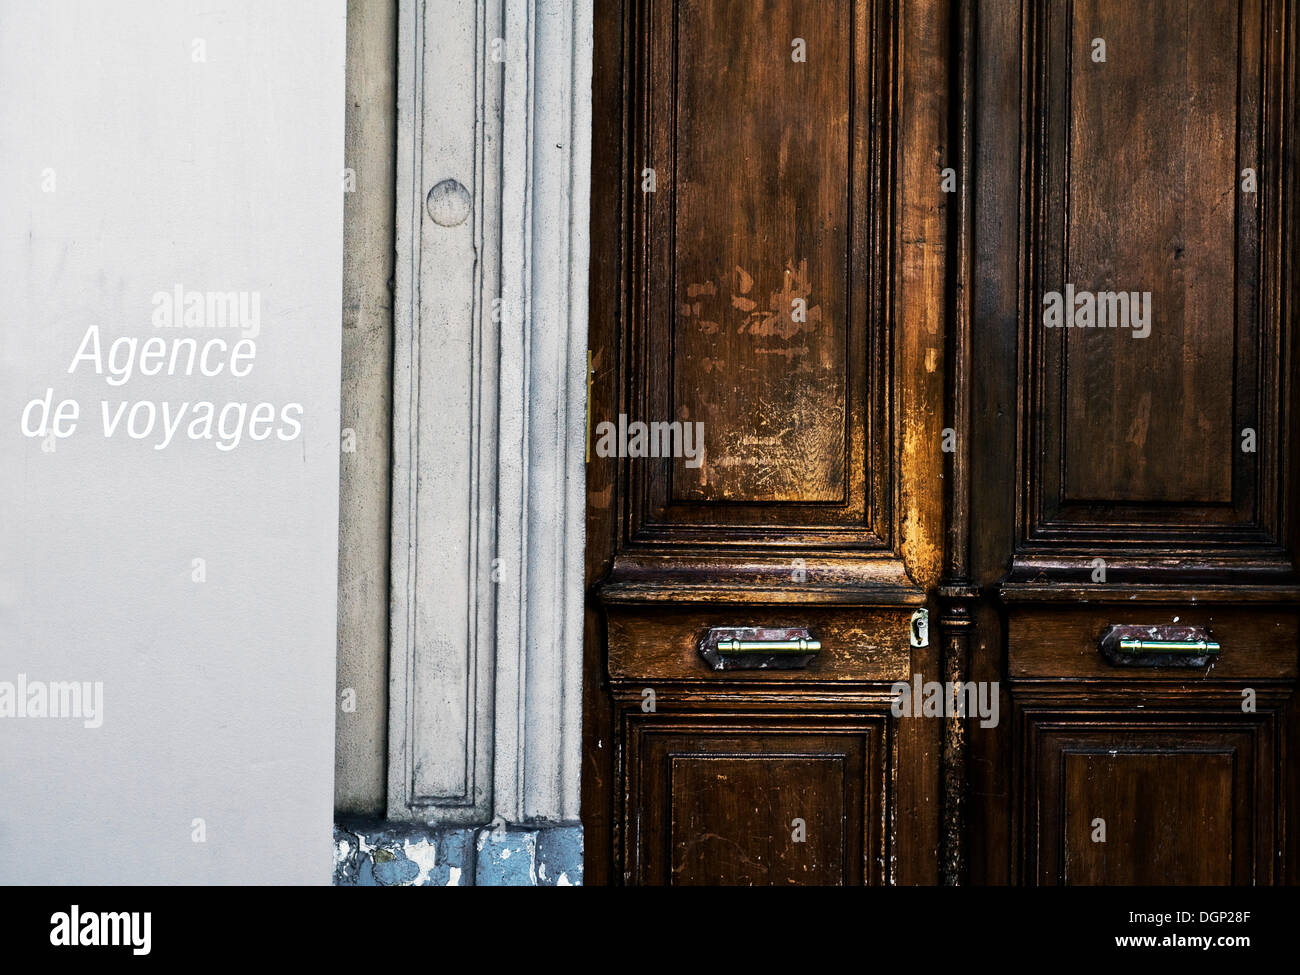 Front door, Agence Voyages, Paris, France, Europe - Stock Image